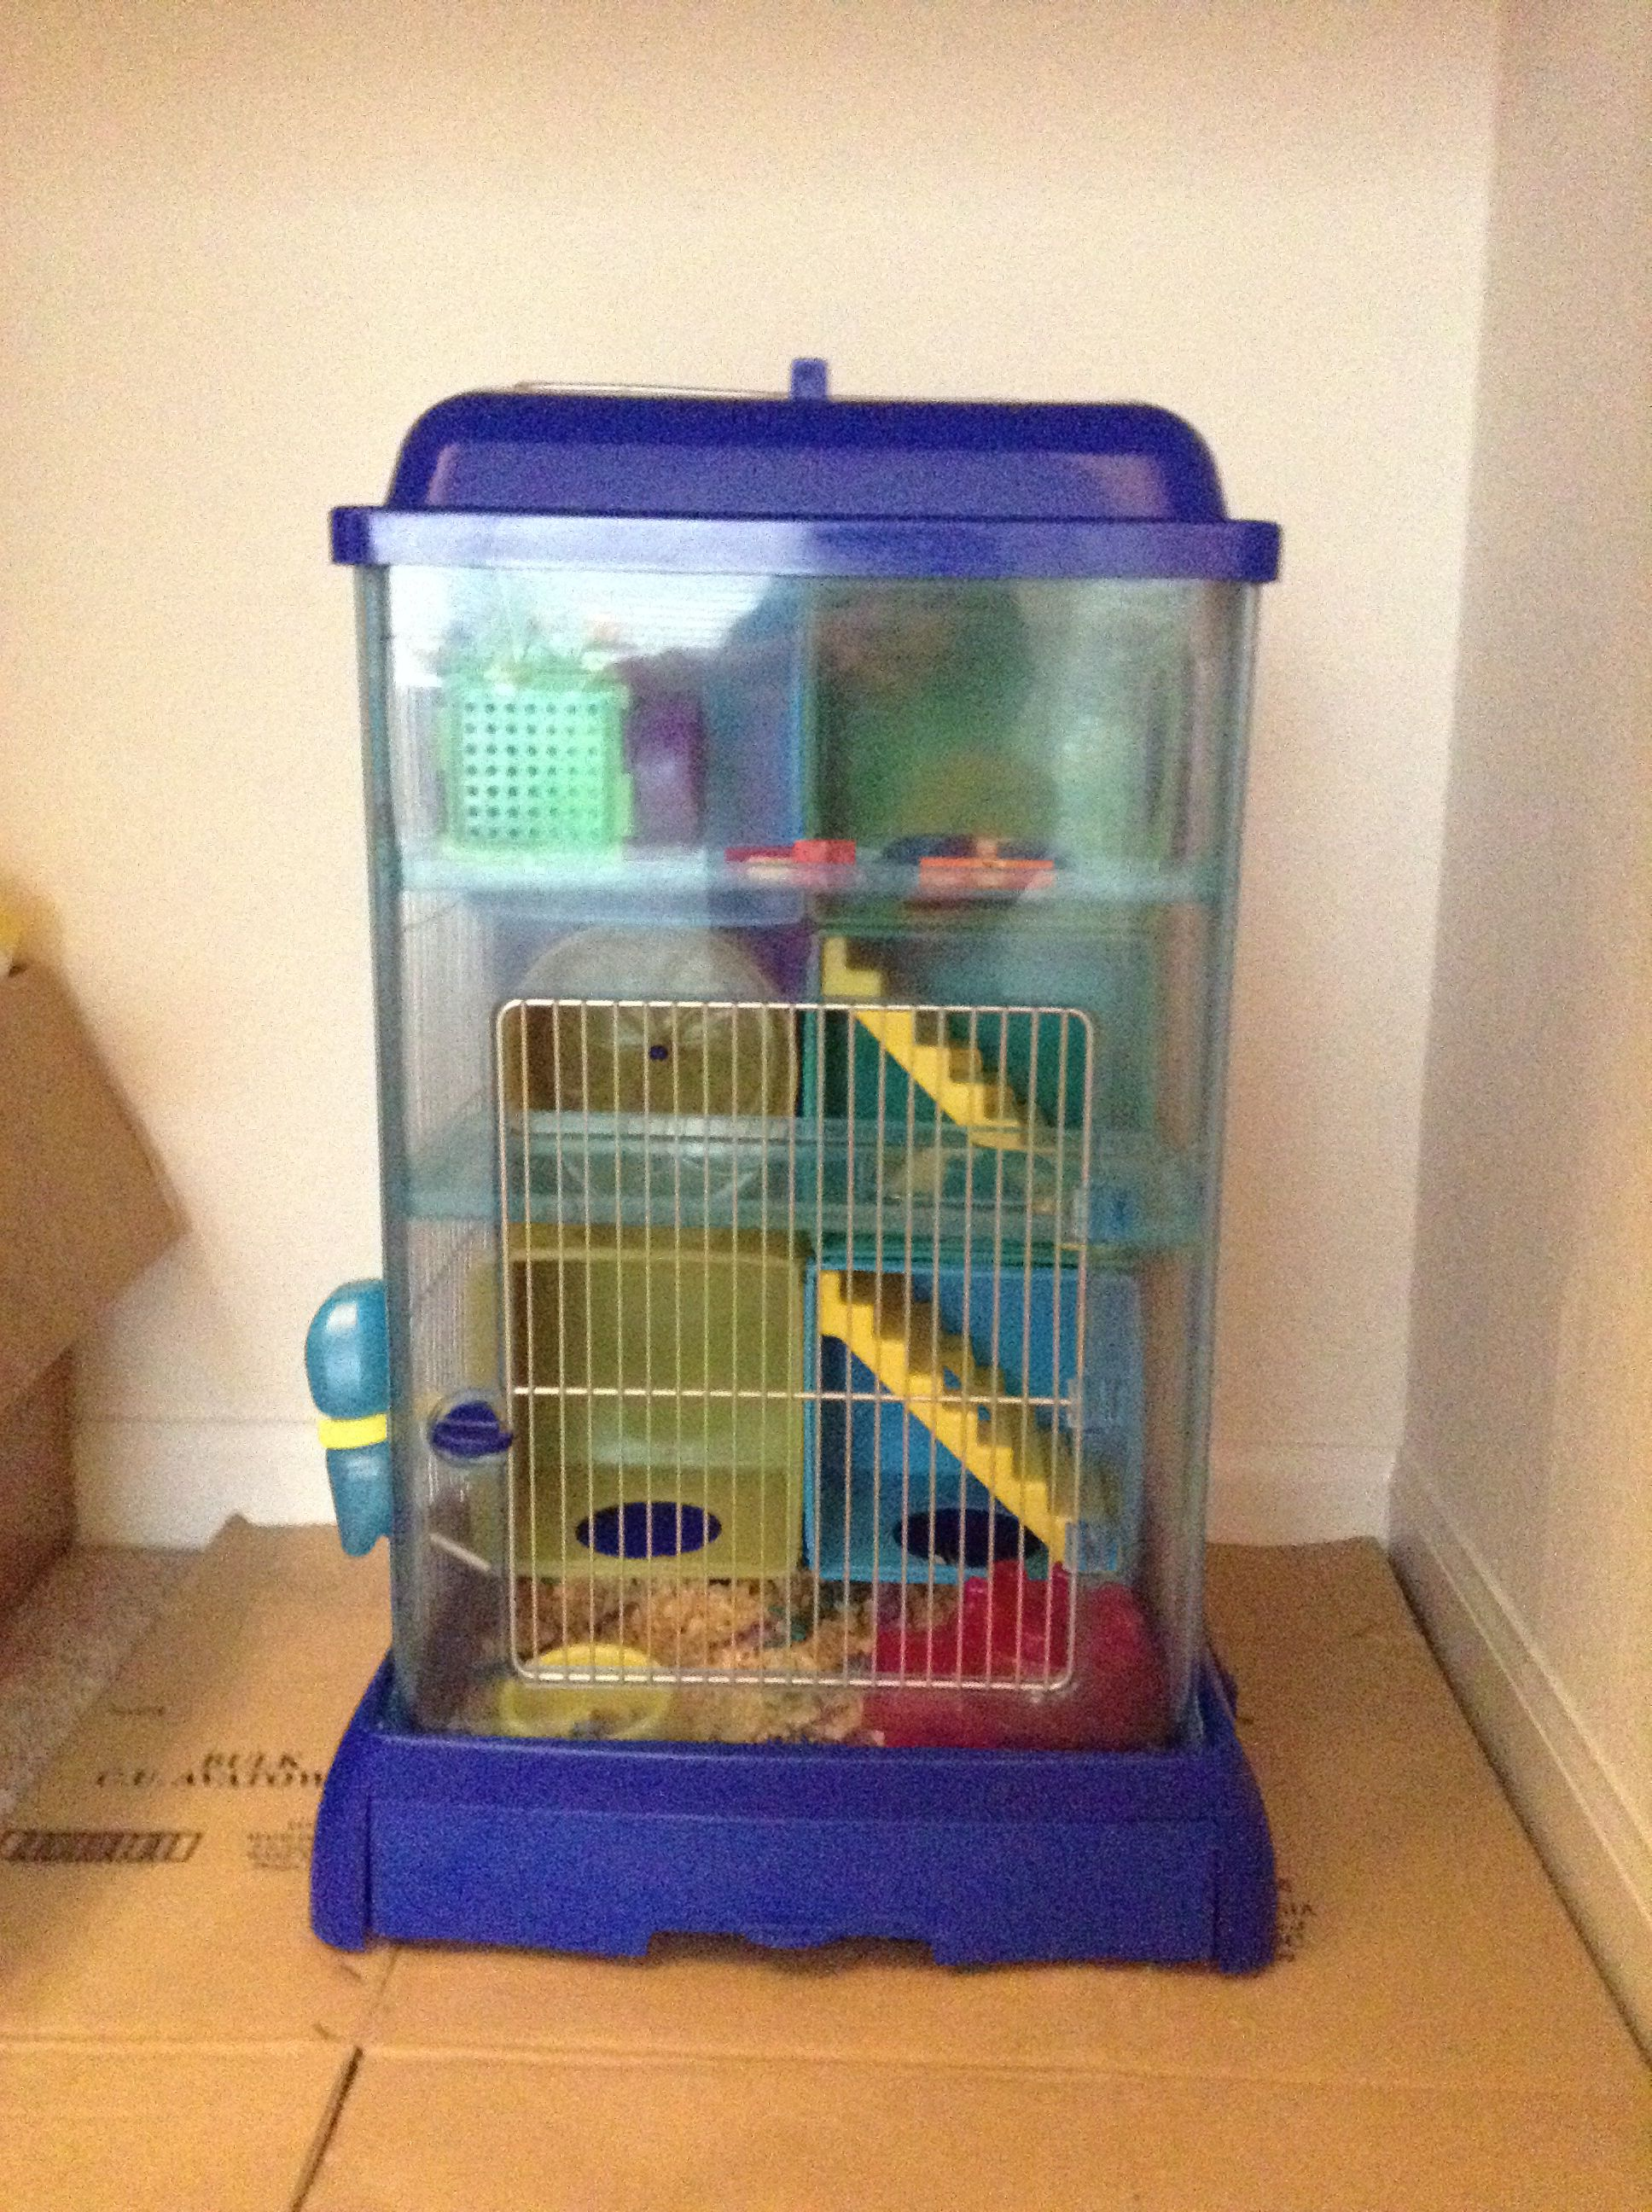 This Is My Hamster S Cage So Big 3 Stories High